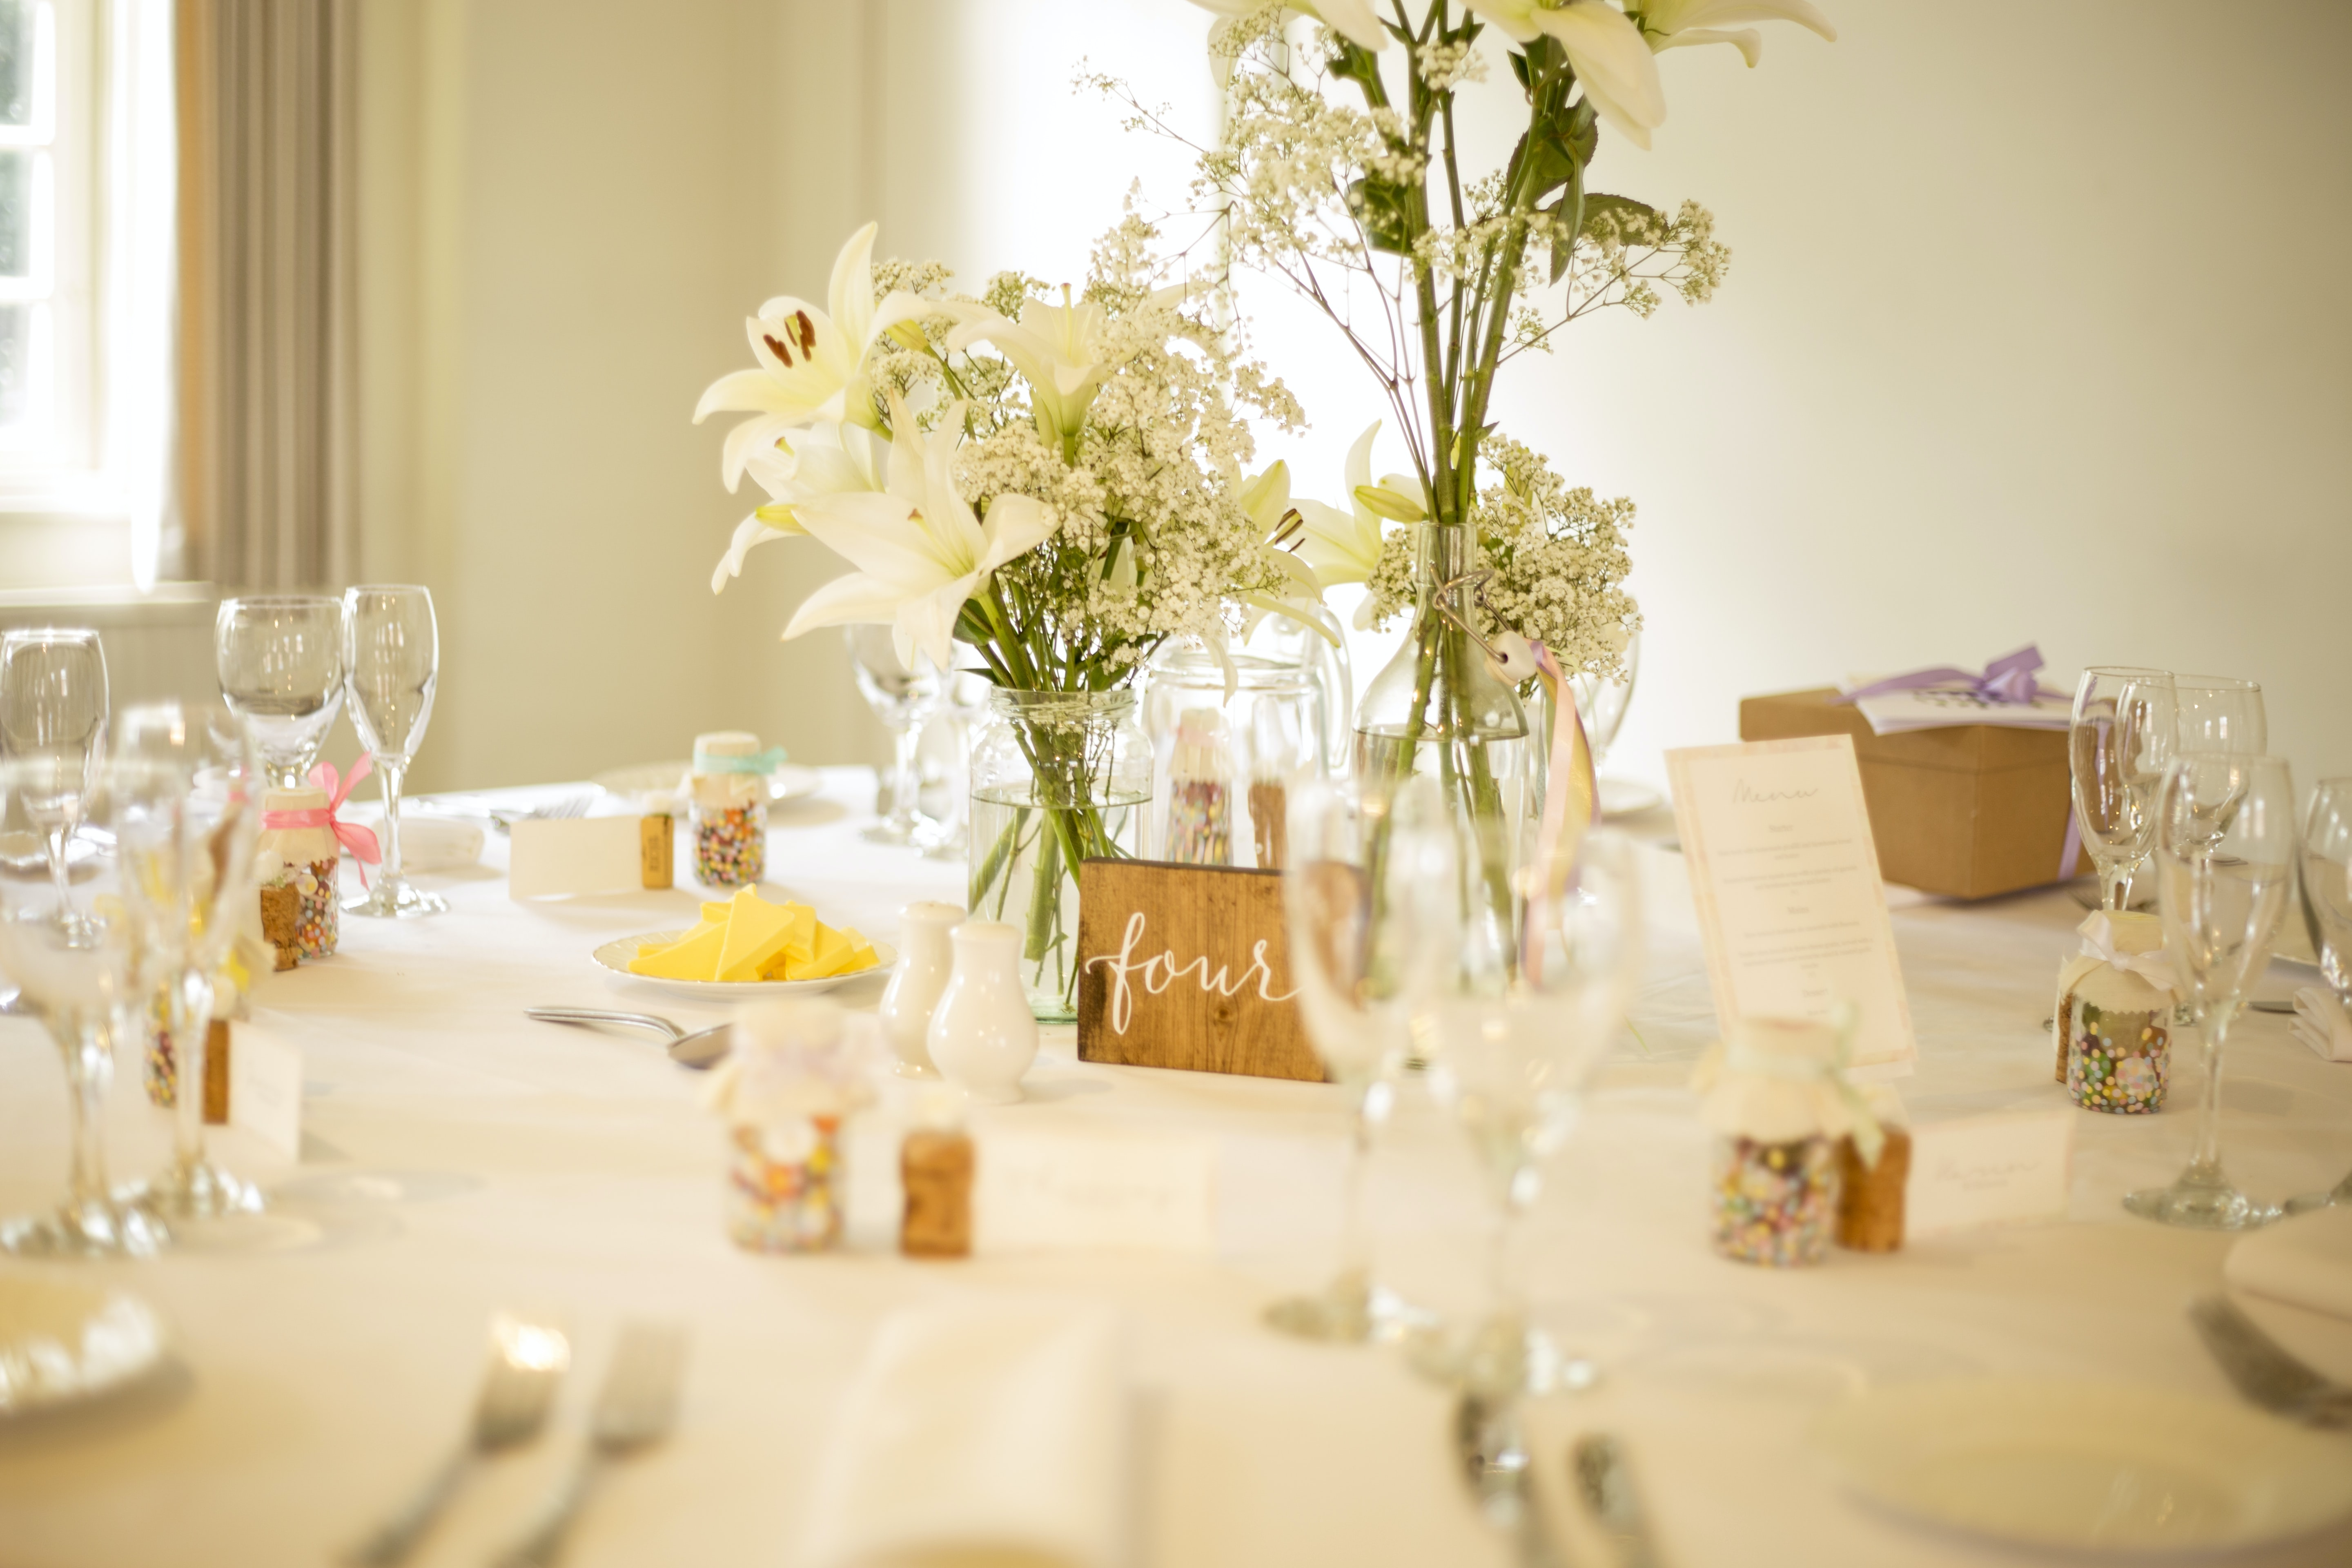 table with dinnerware set